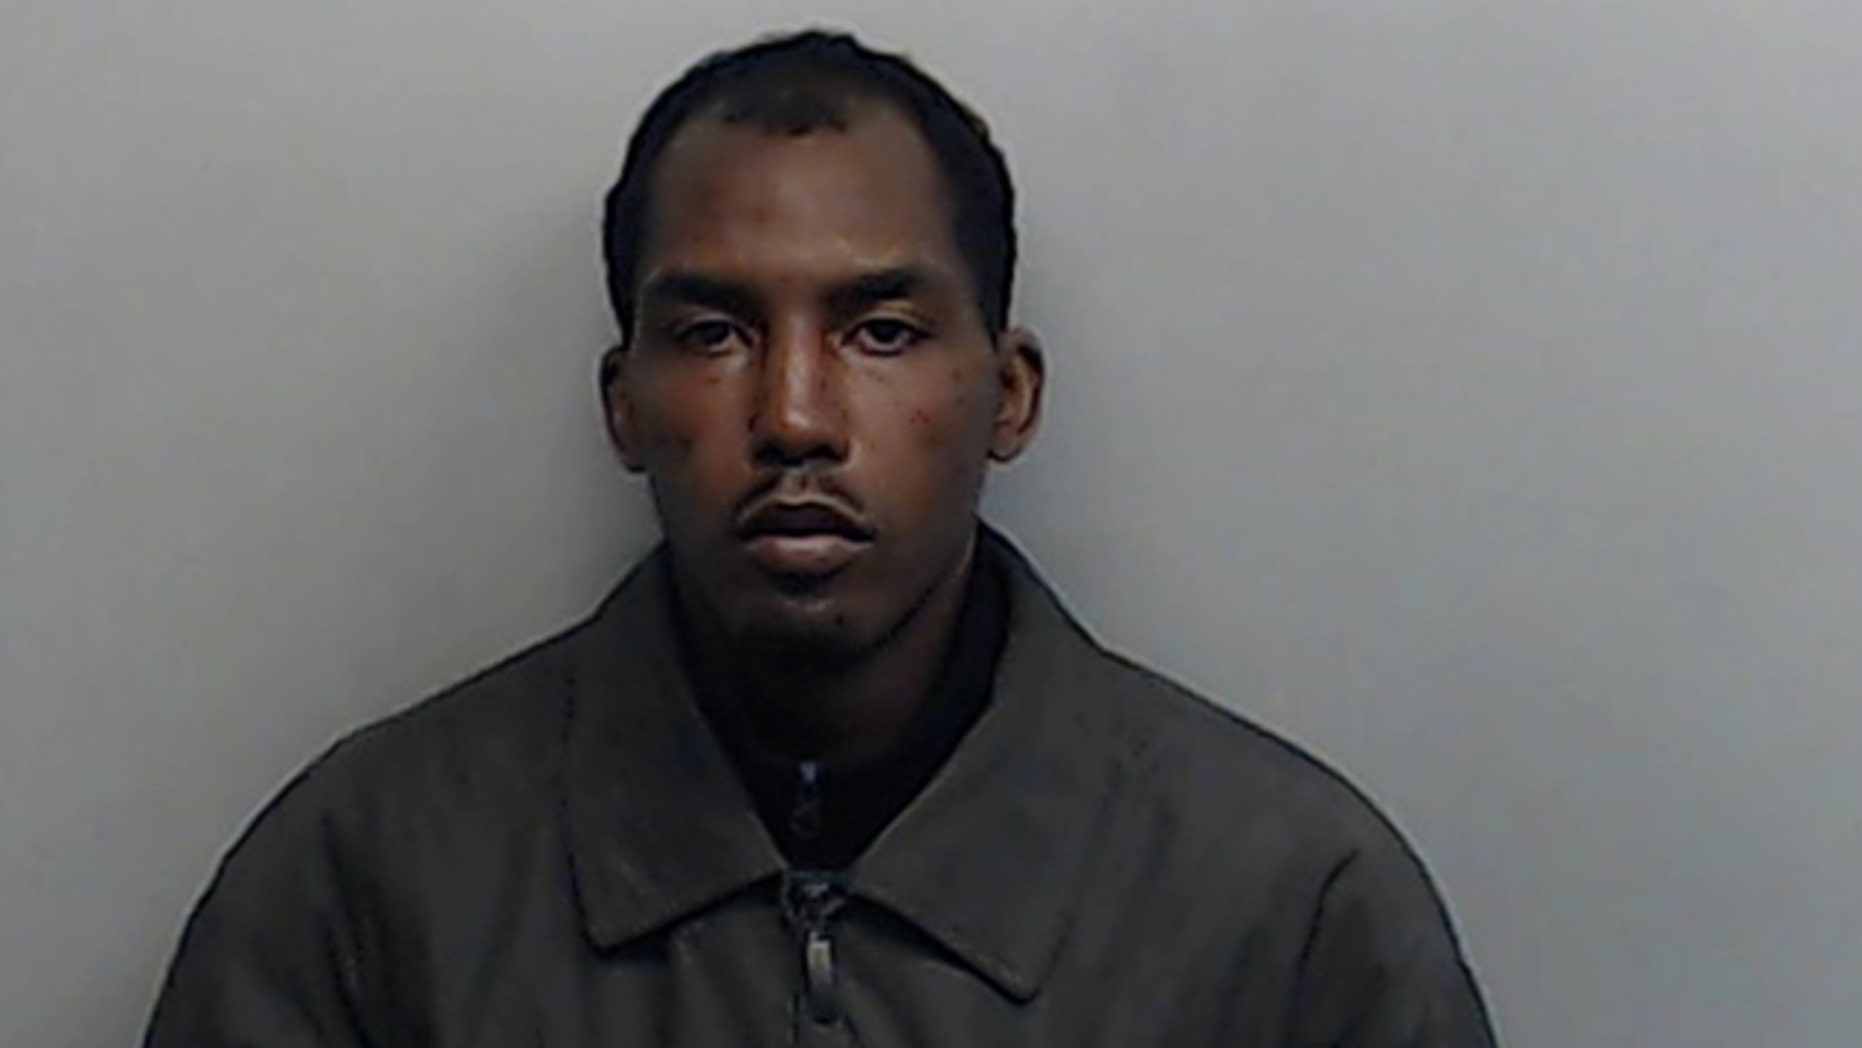 Aeman Presley is pictured in this photo provided by Fox affiliate WAGA-TV.